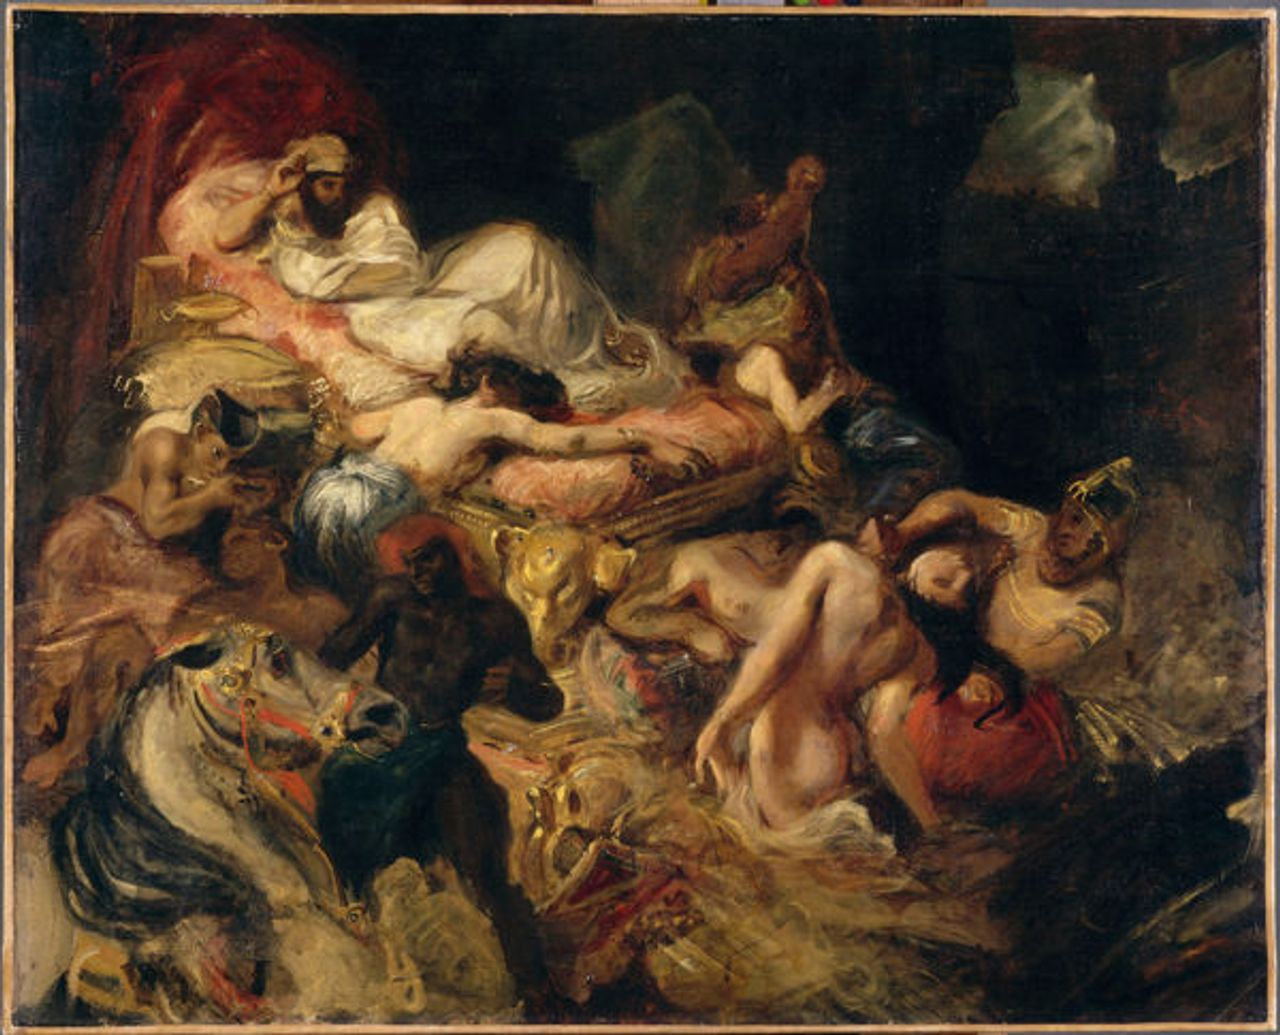 Death of Sardanapalus, sketch, 1826-27